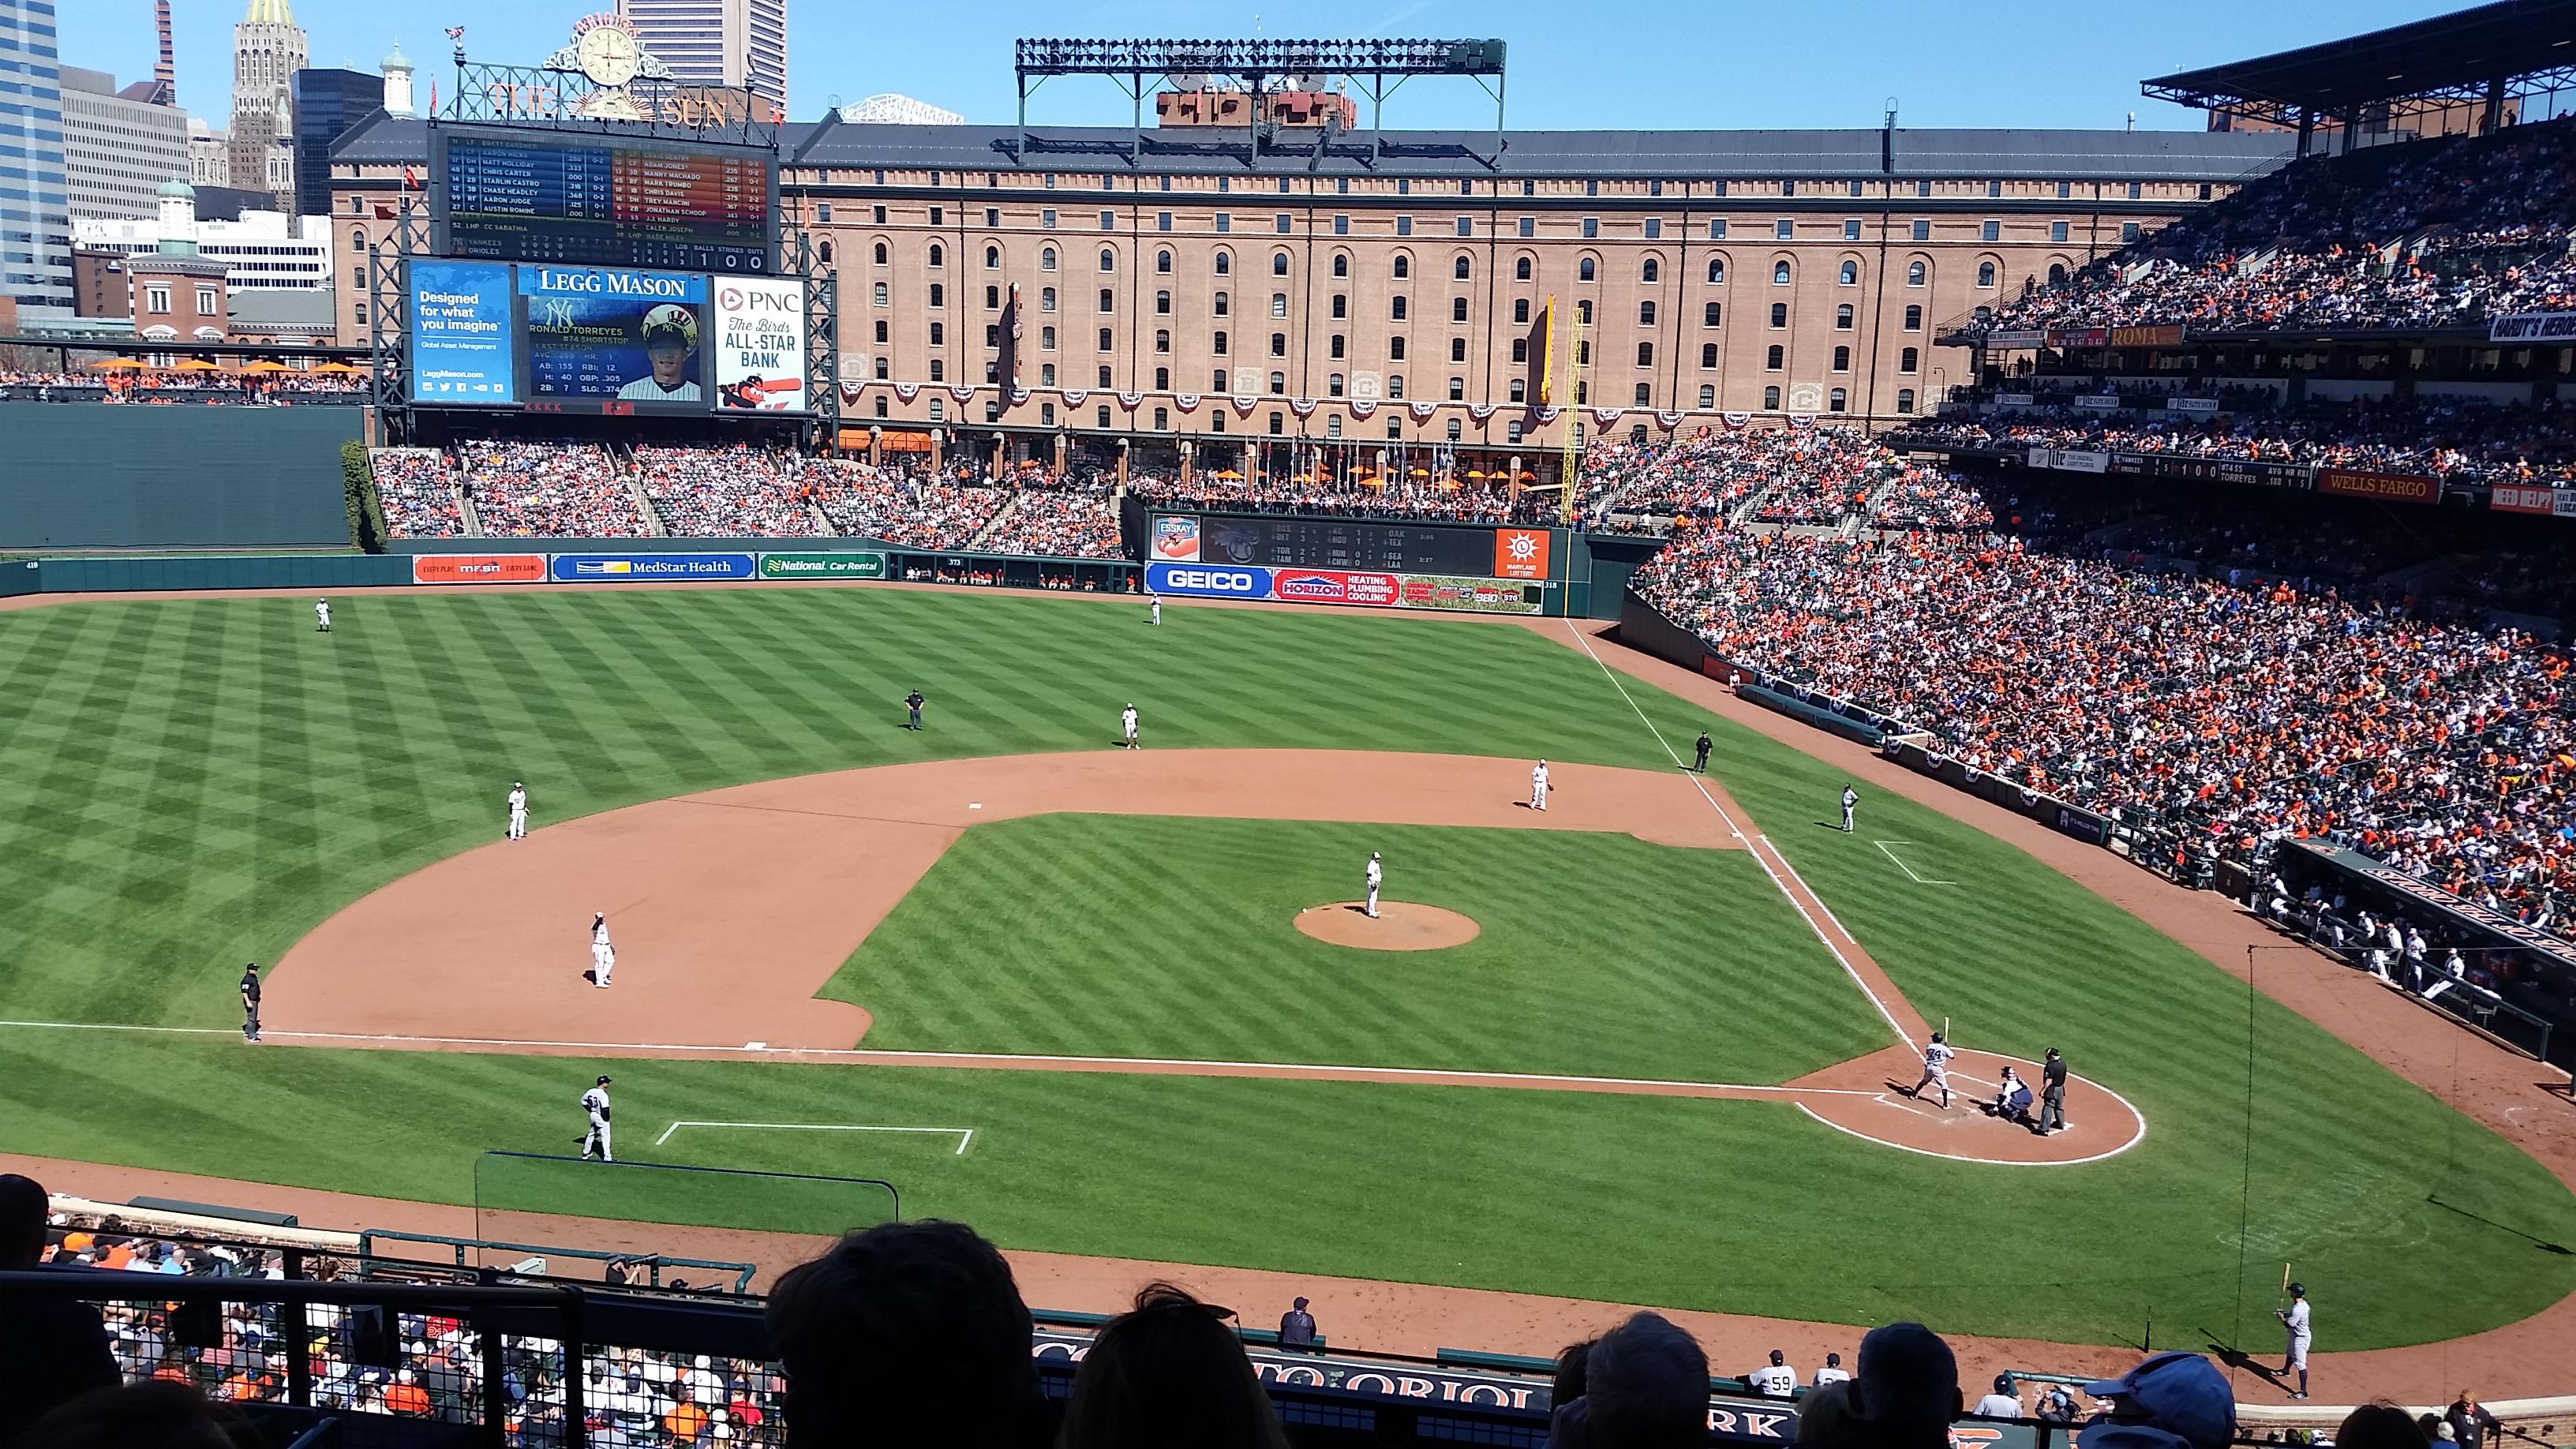 Oriole Park at Camden Yards Section 246 Row 7 Seat 13